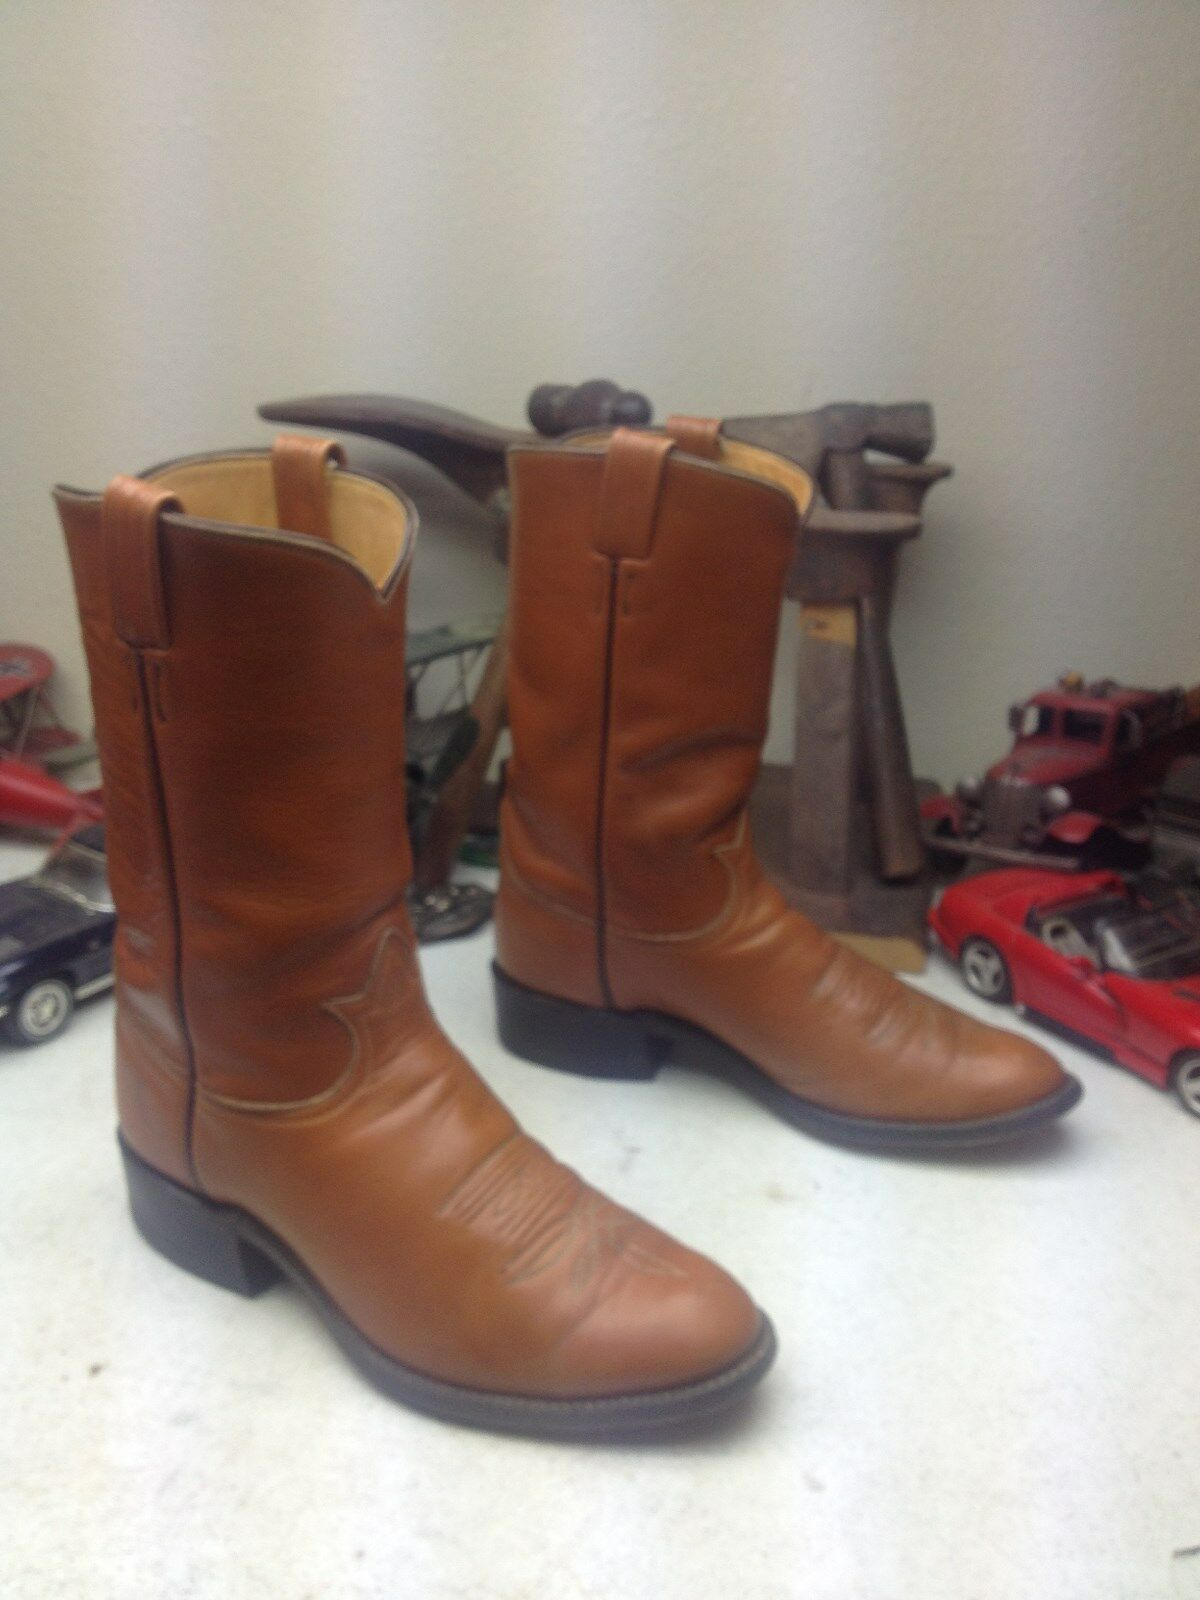 VINTAGE USA 2054 TONY LAMA BROWN BROWN BROWN LEATHER SADDLE WESTERN ENGINEER BOOTS 10.5 D a9f36f